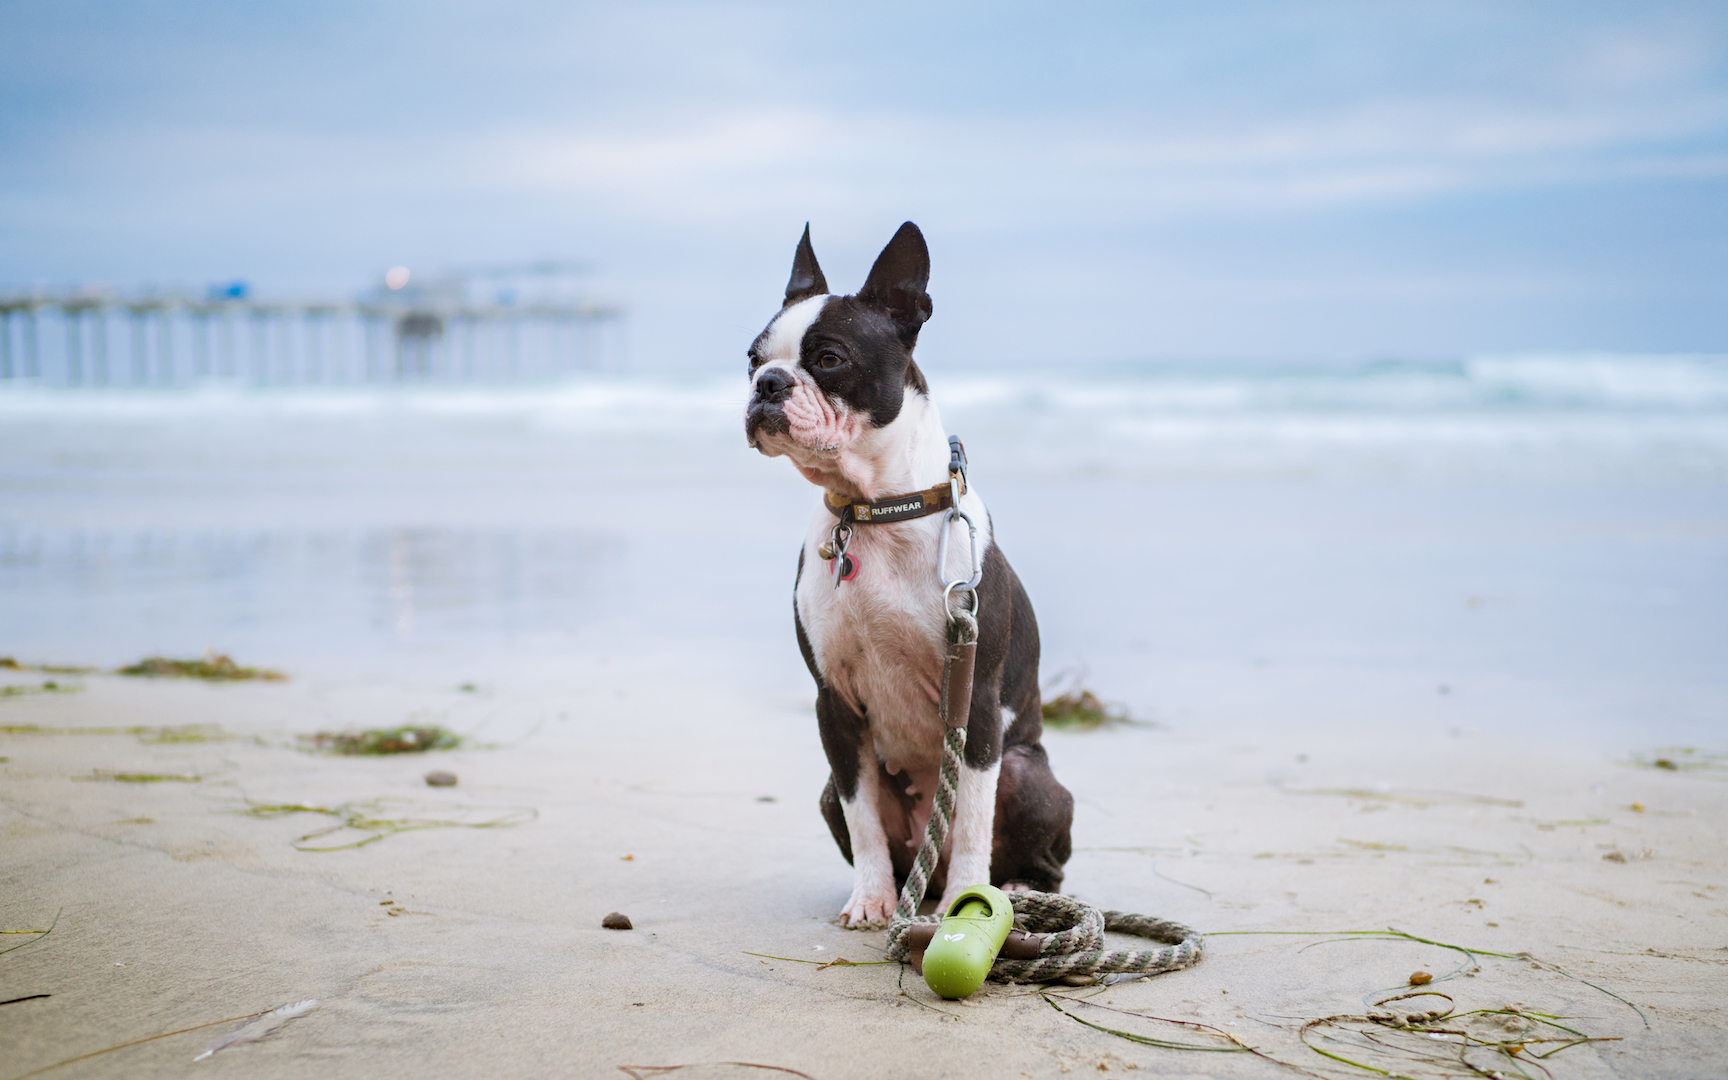 Earth Rated in La Jolla Scripps Pier with Boston Terriers